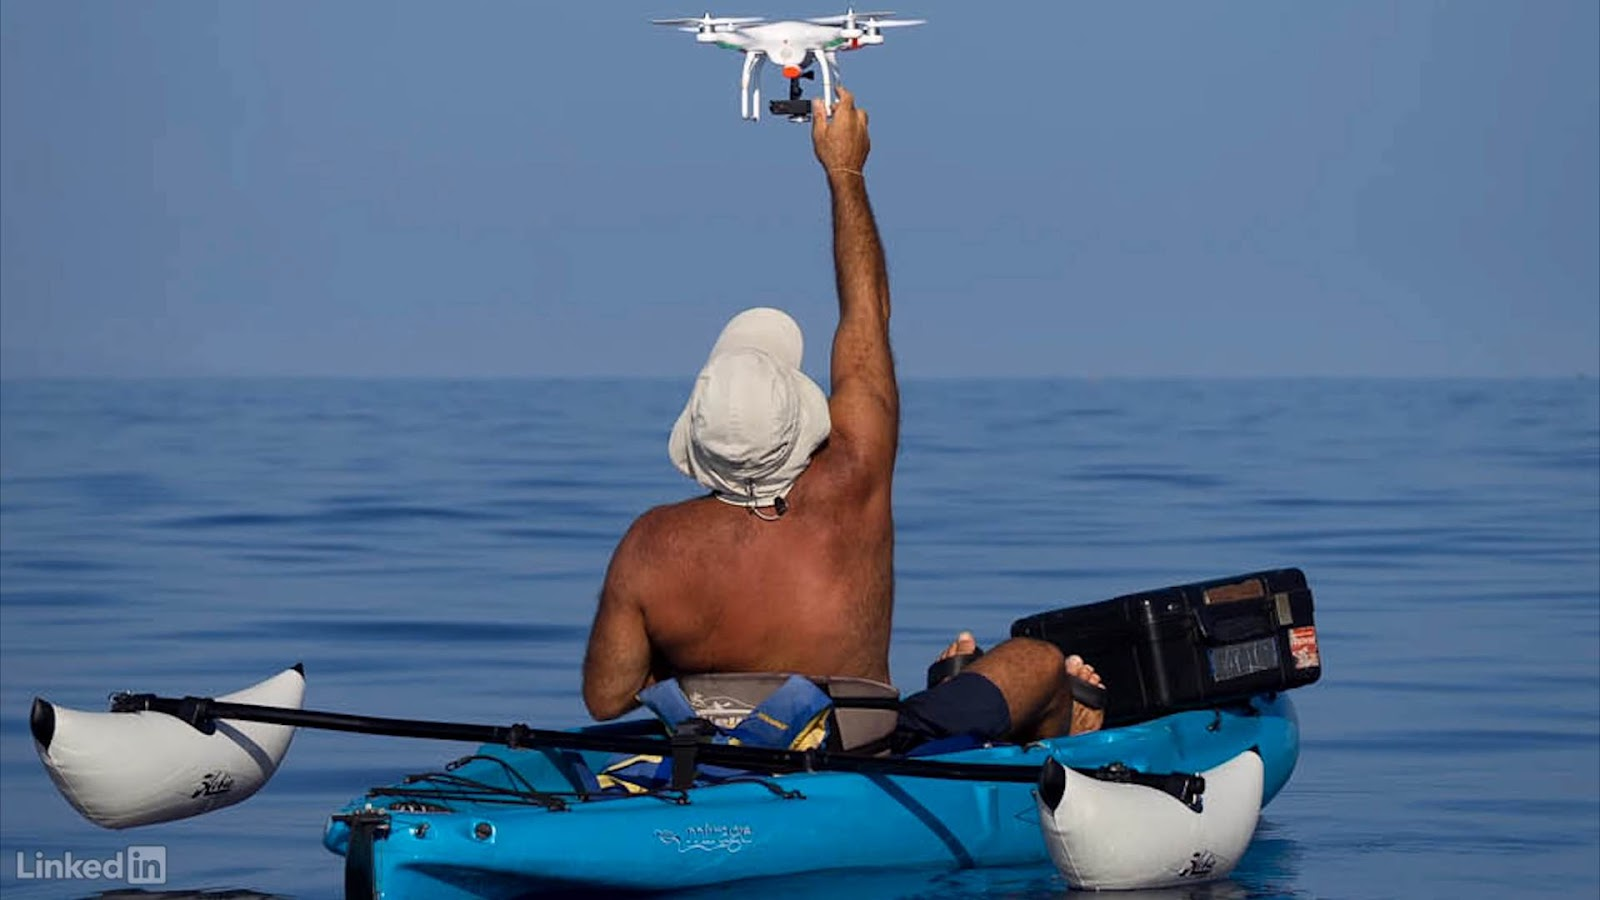 Flight Club: Drones and the Dawn of Personal Aerial Imaging